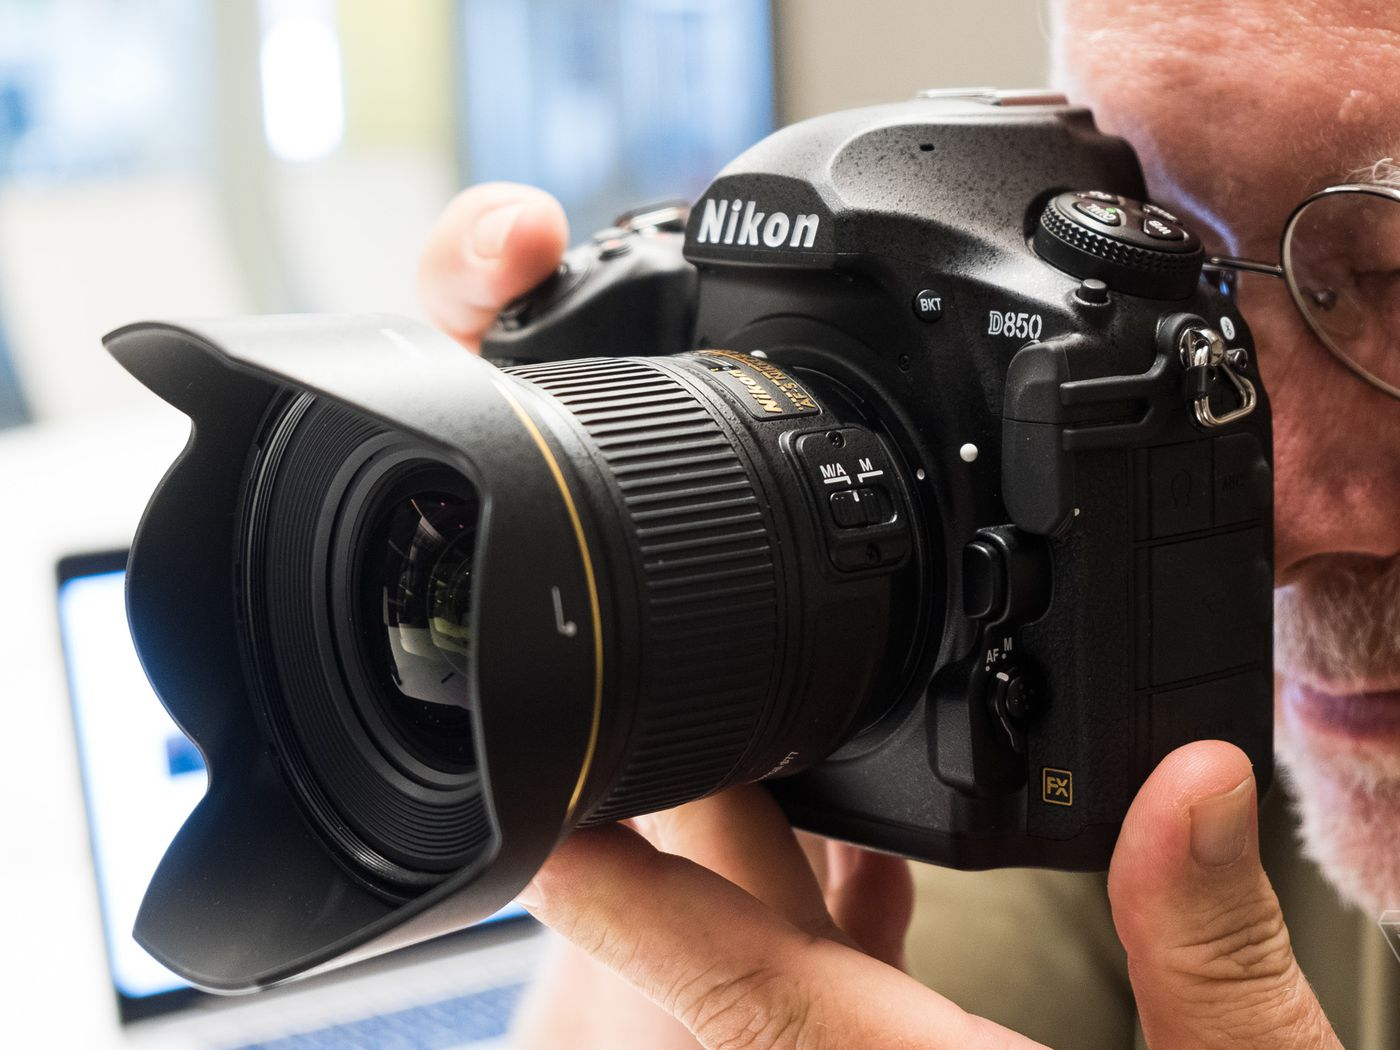 Nikon's new D850 has 45 7 megapixels and enough features to